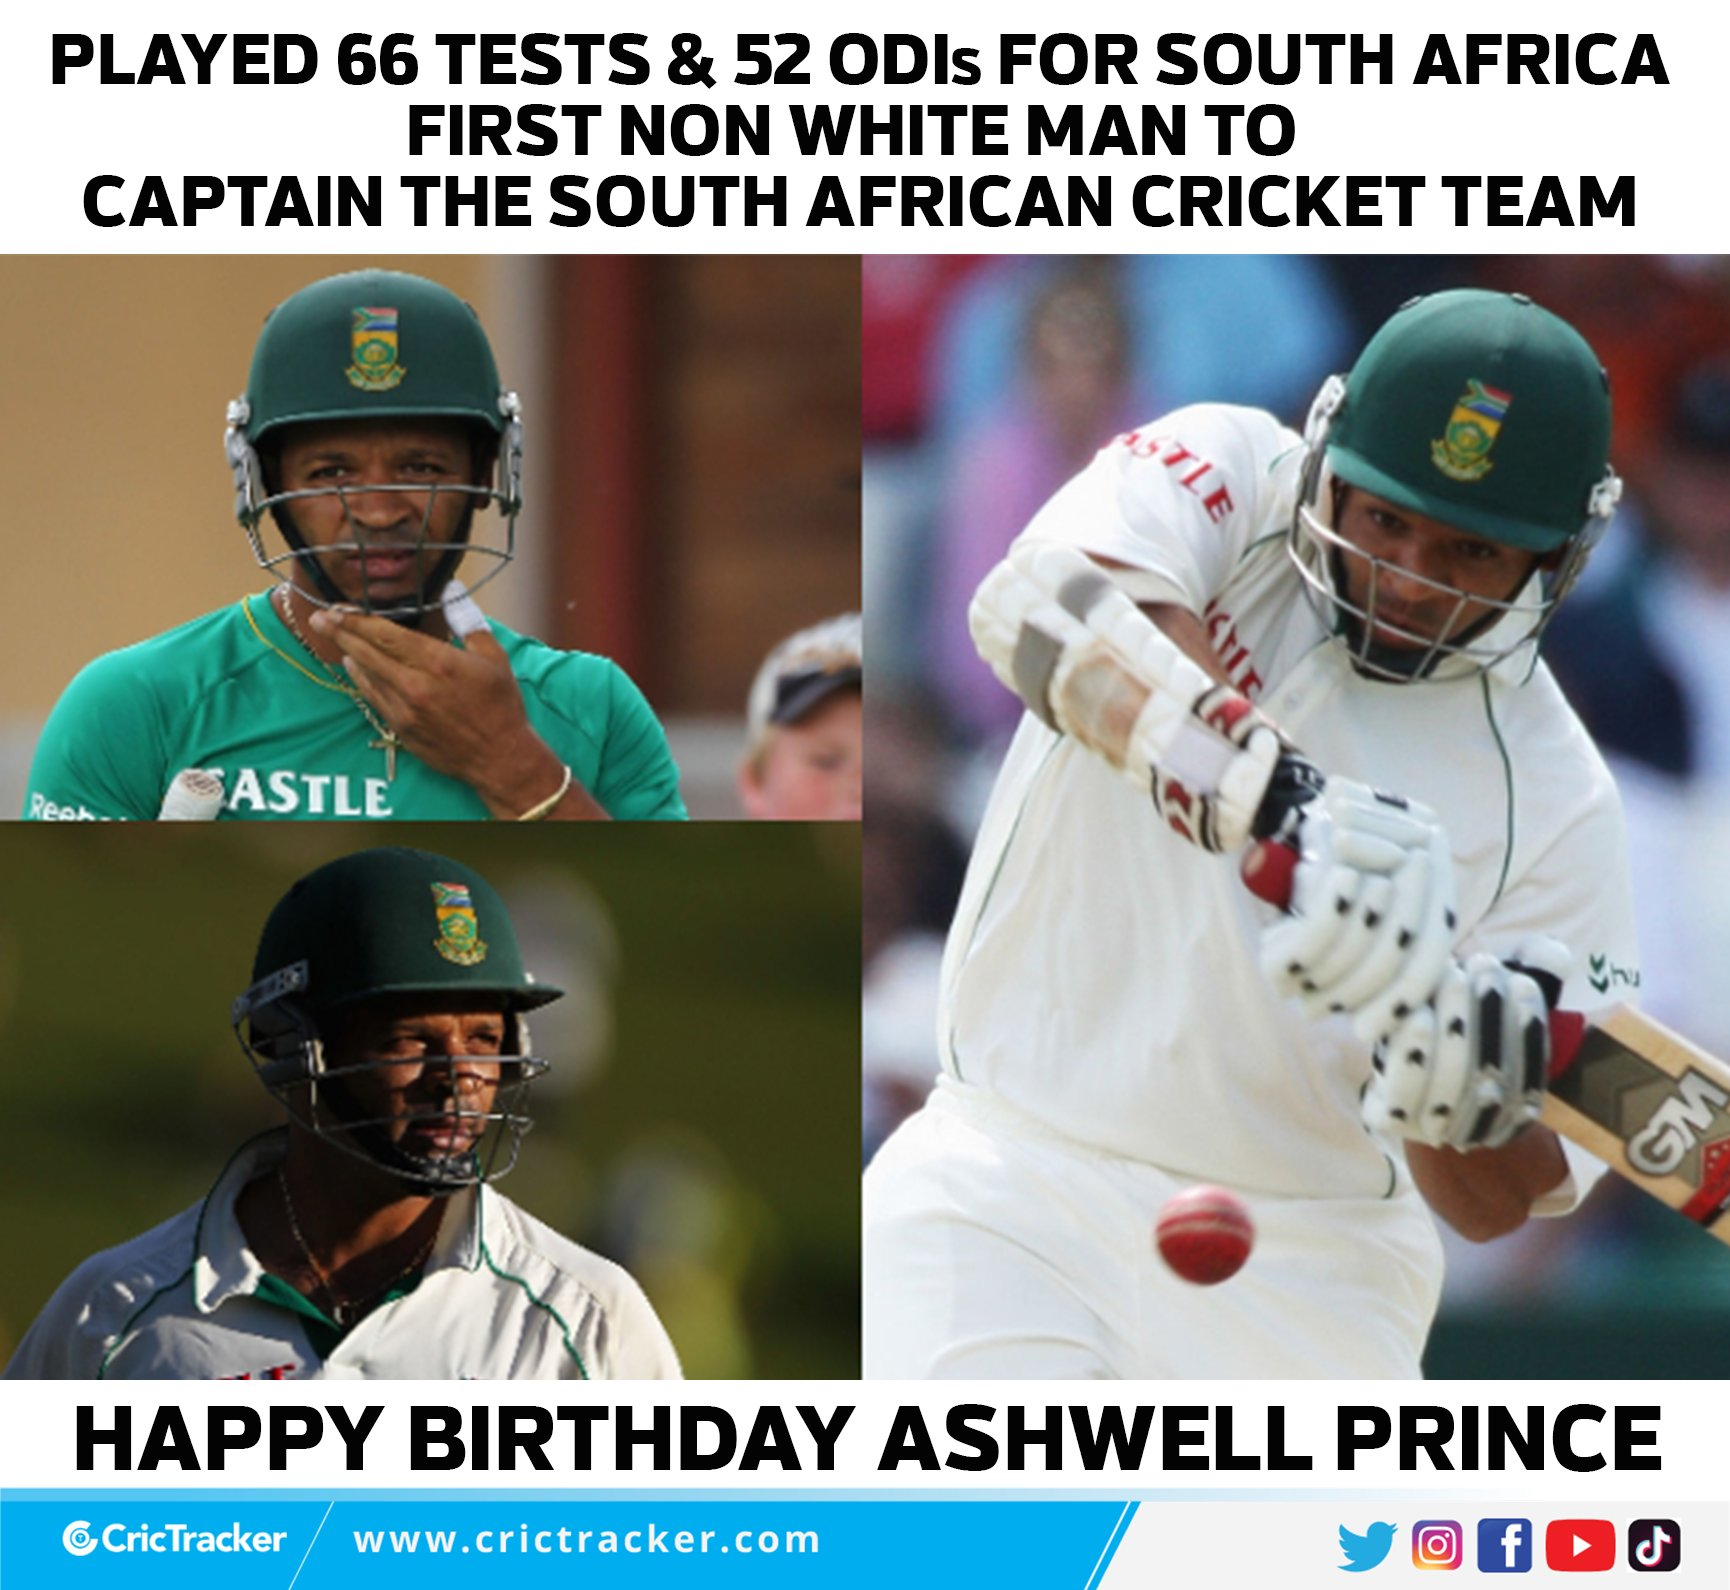 Join us in wishing Ashwell Prince a very happy birthday.